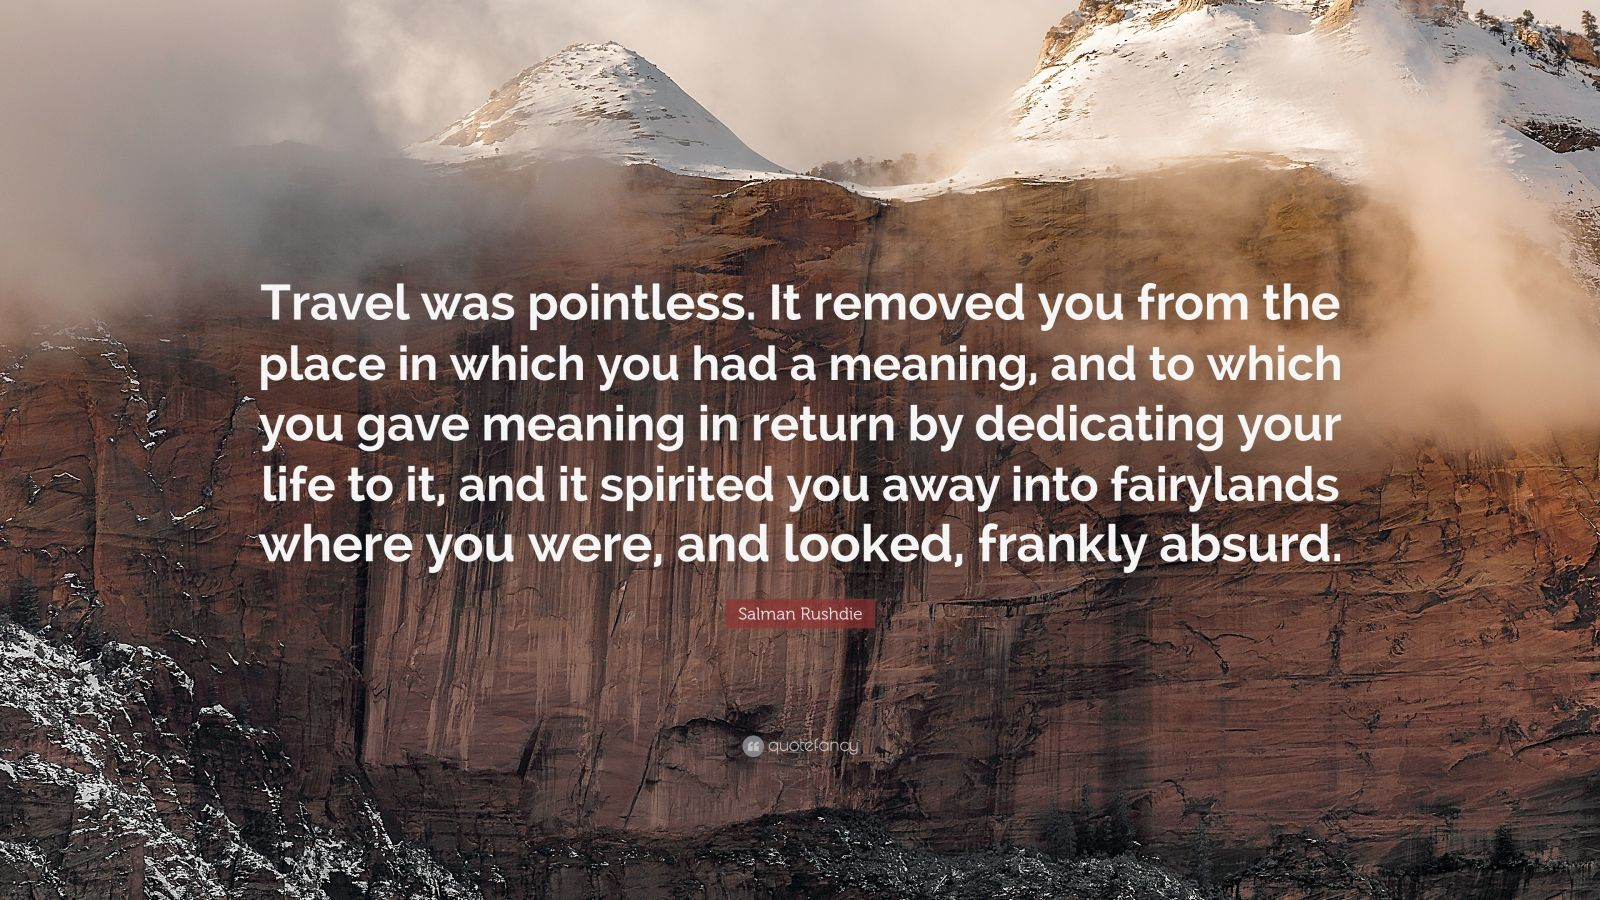 """Salman Rushdie Quote: """"Travel was pointless. It removed you from the place in which you had a meaning, and to which you gave meaning in return by dedicating your life to it, and it spirited you away into fairylands where you were, and looked, frankly absurd."""""""